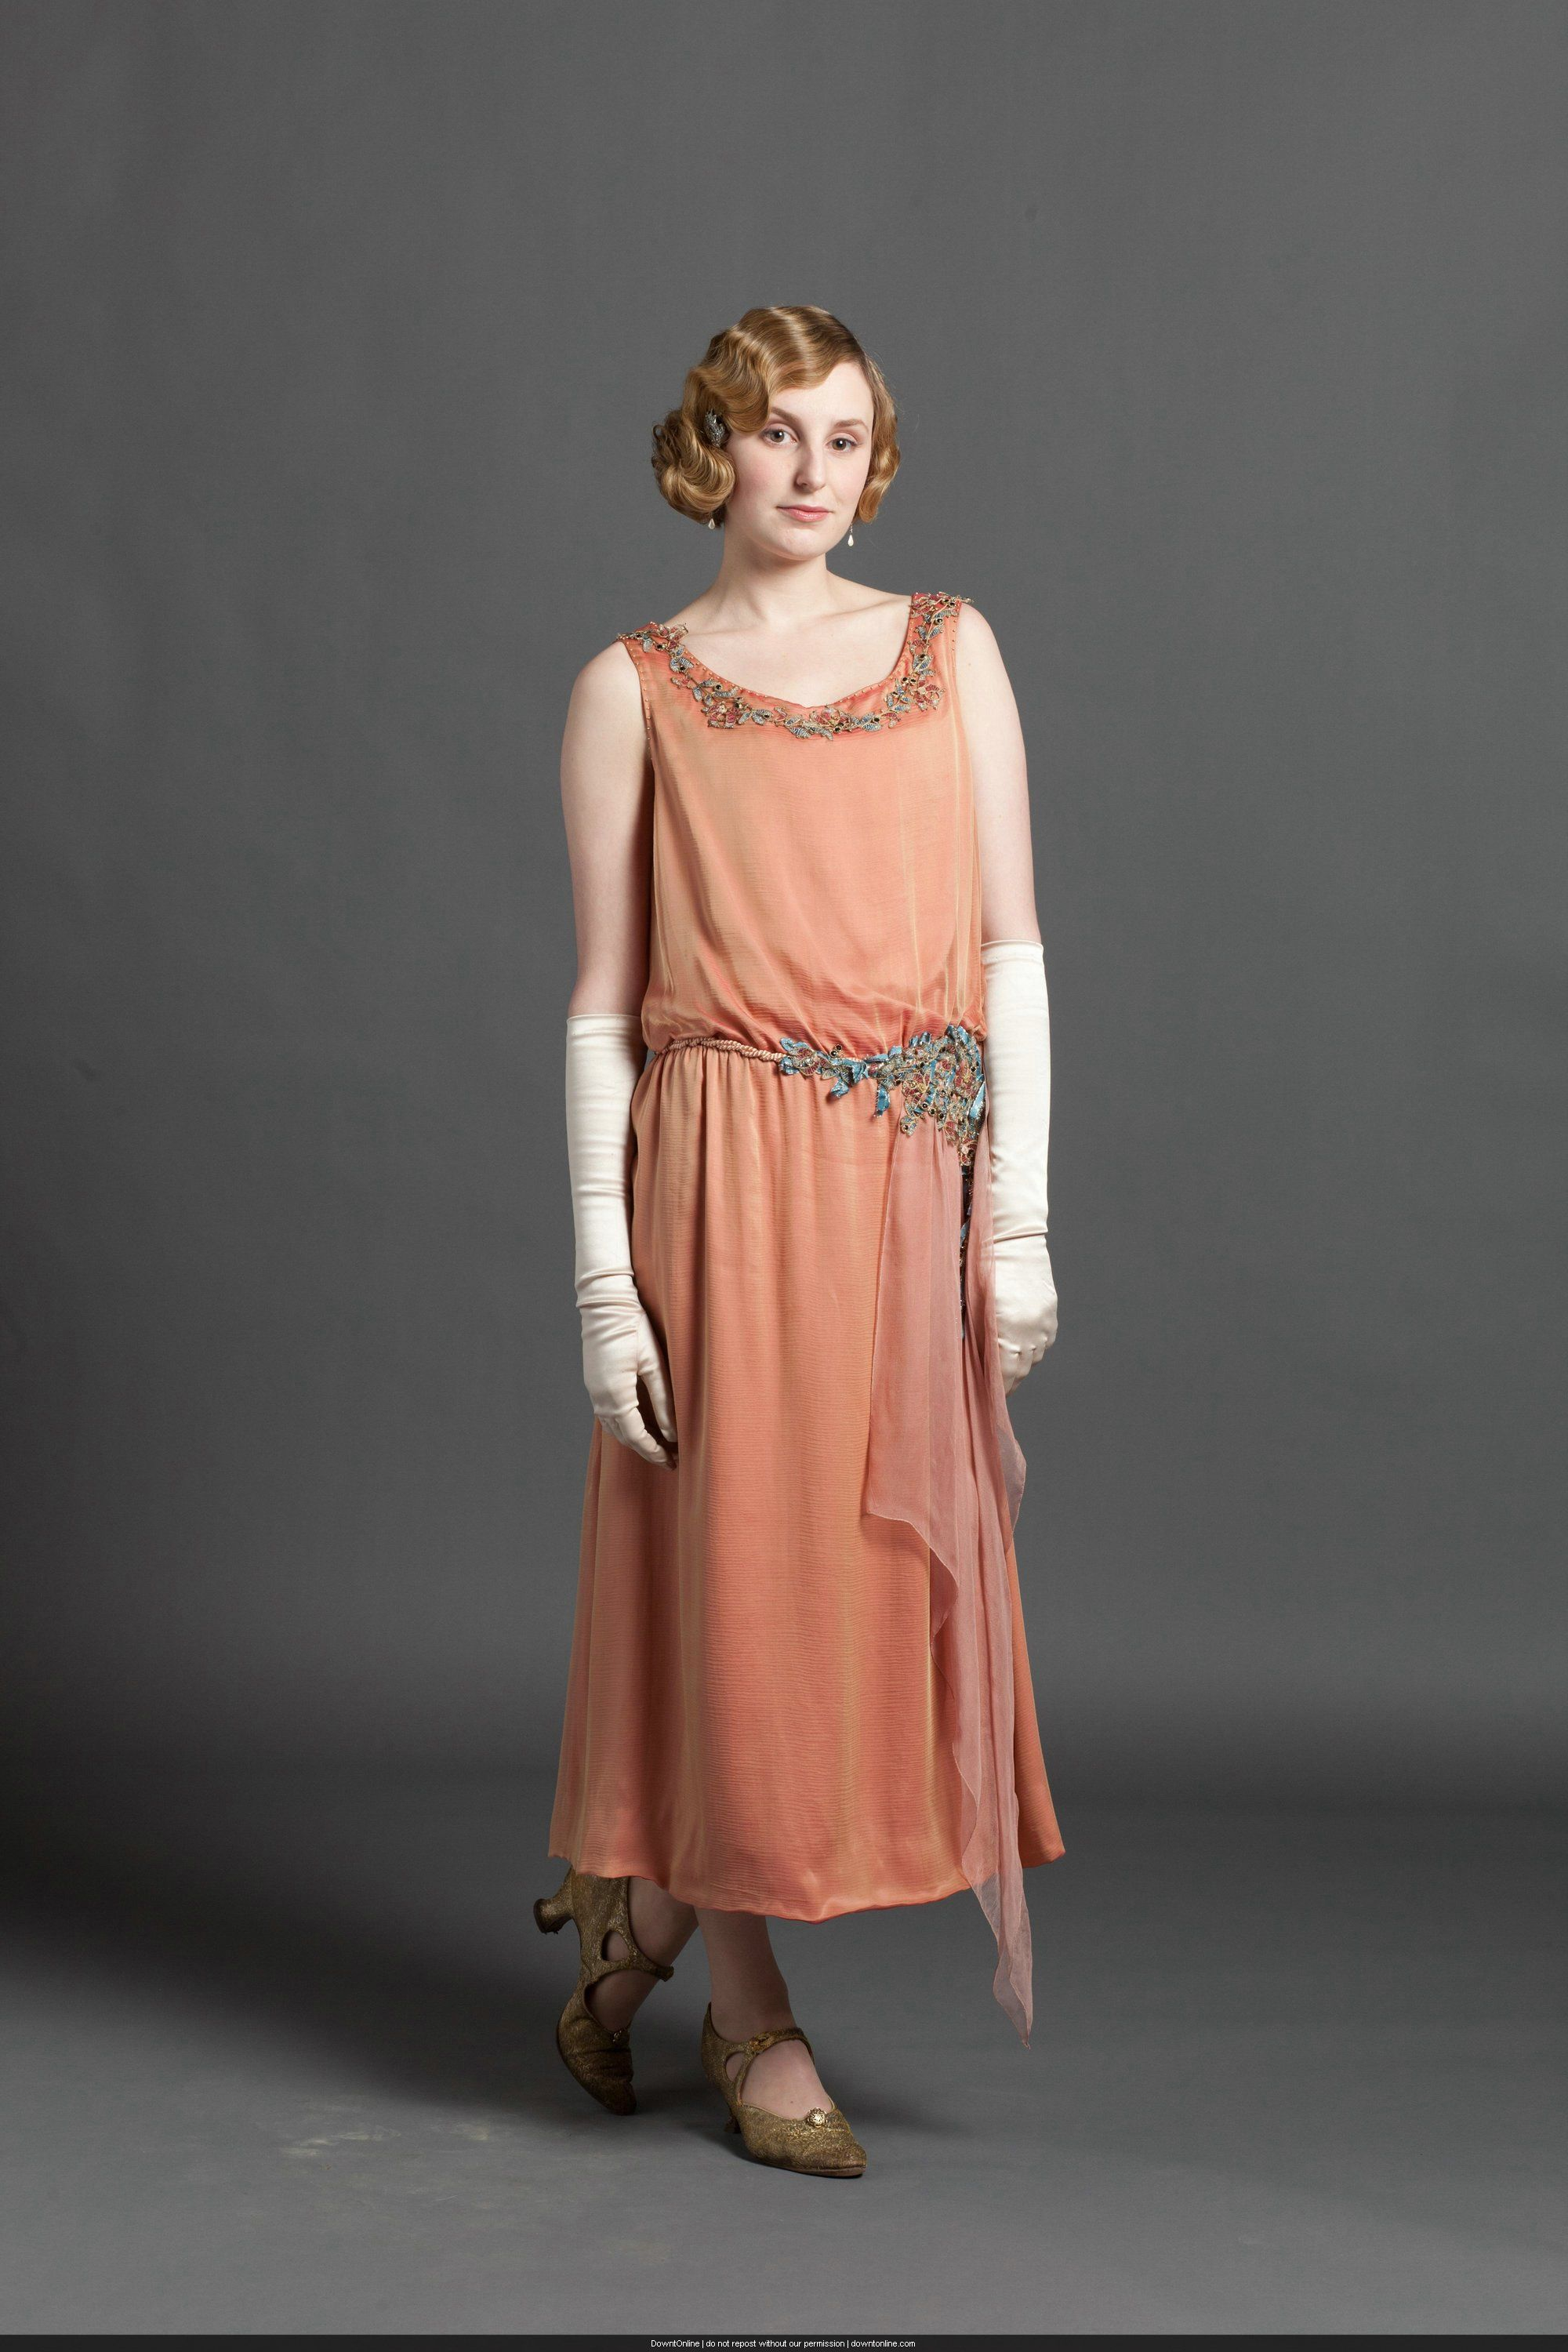 A Look At The History Of 1920 Fashion As Seen In Downton Abbey Season Featuring Dresses Hats And Accessories Its Finest